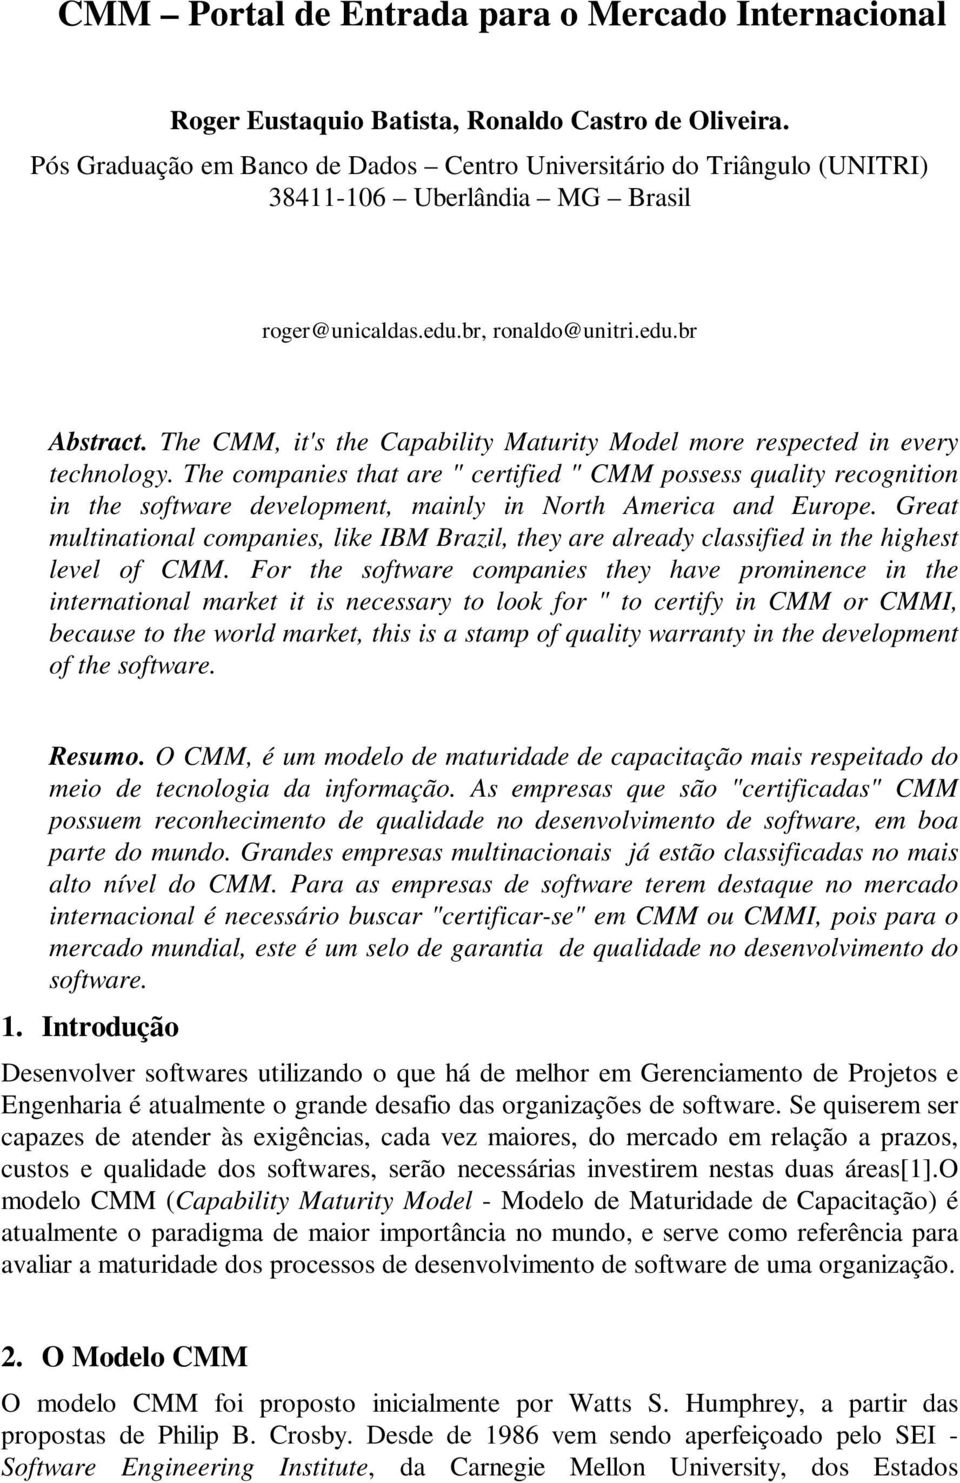 The CMM, it's the Capability Maturity Model more respected in every technology.